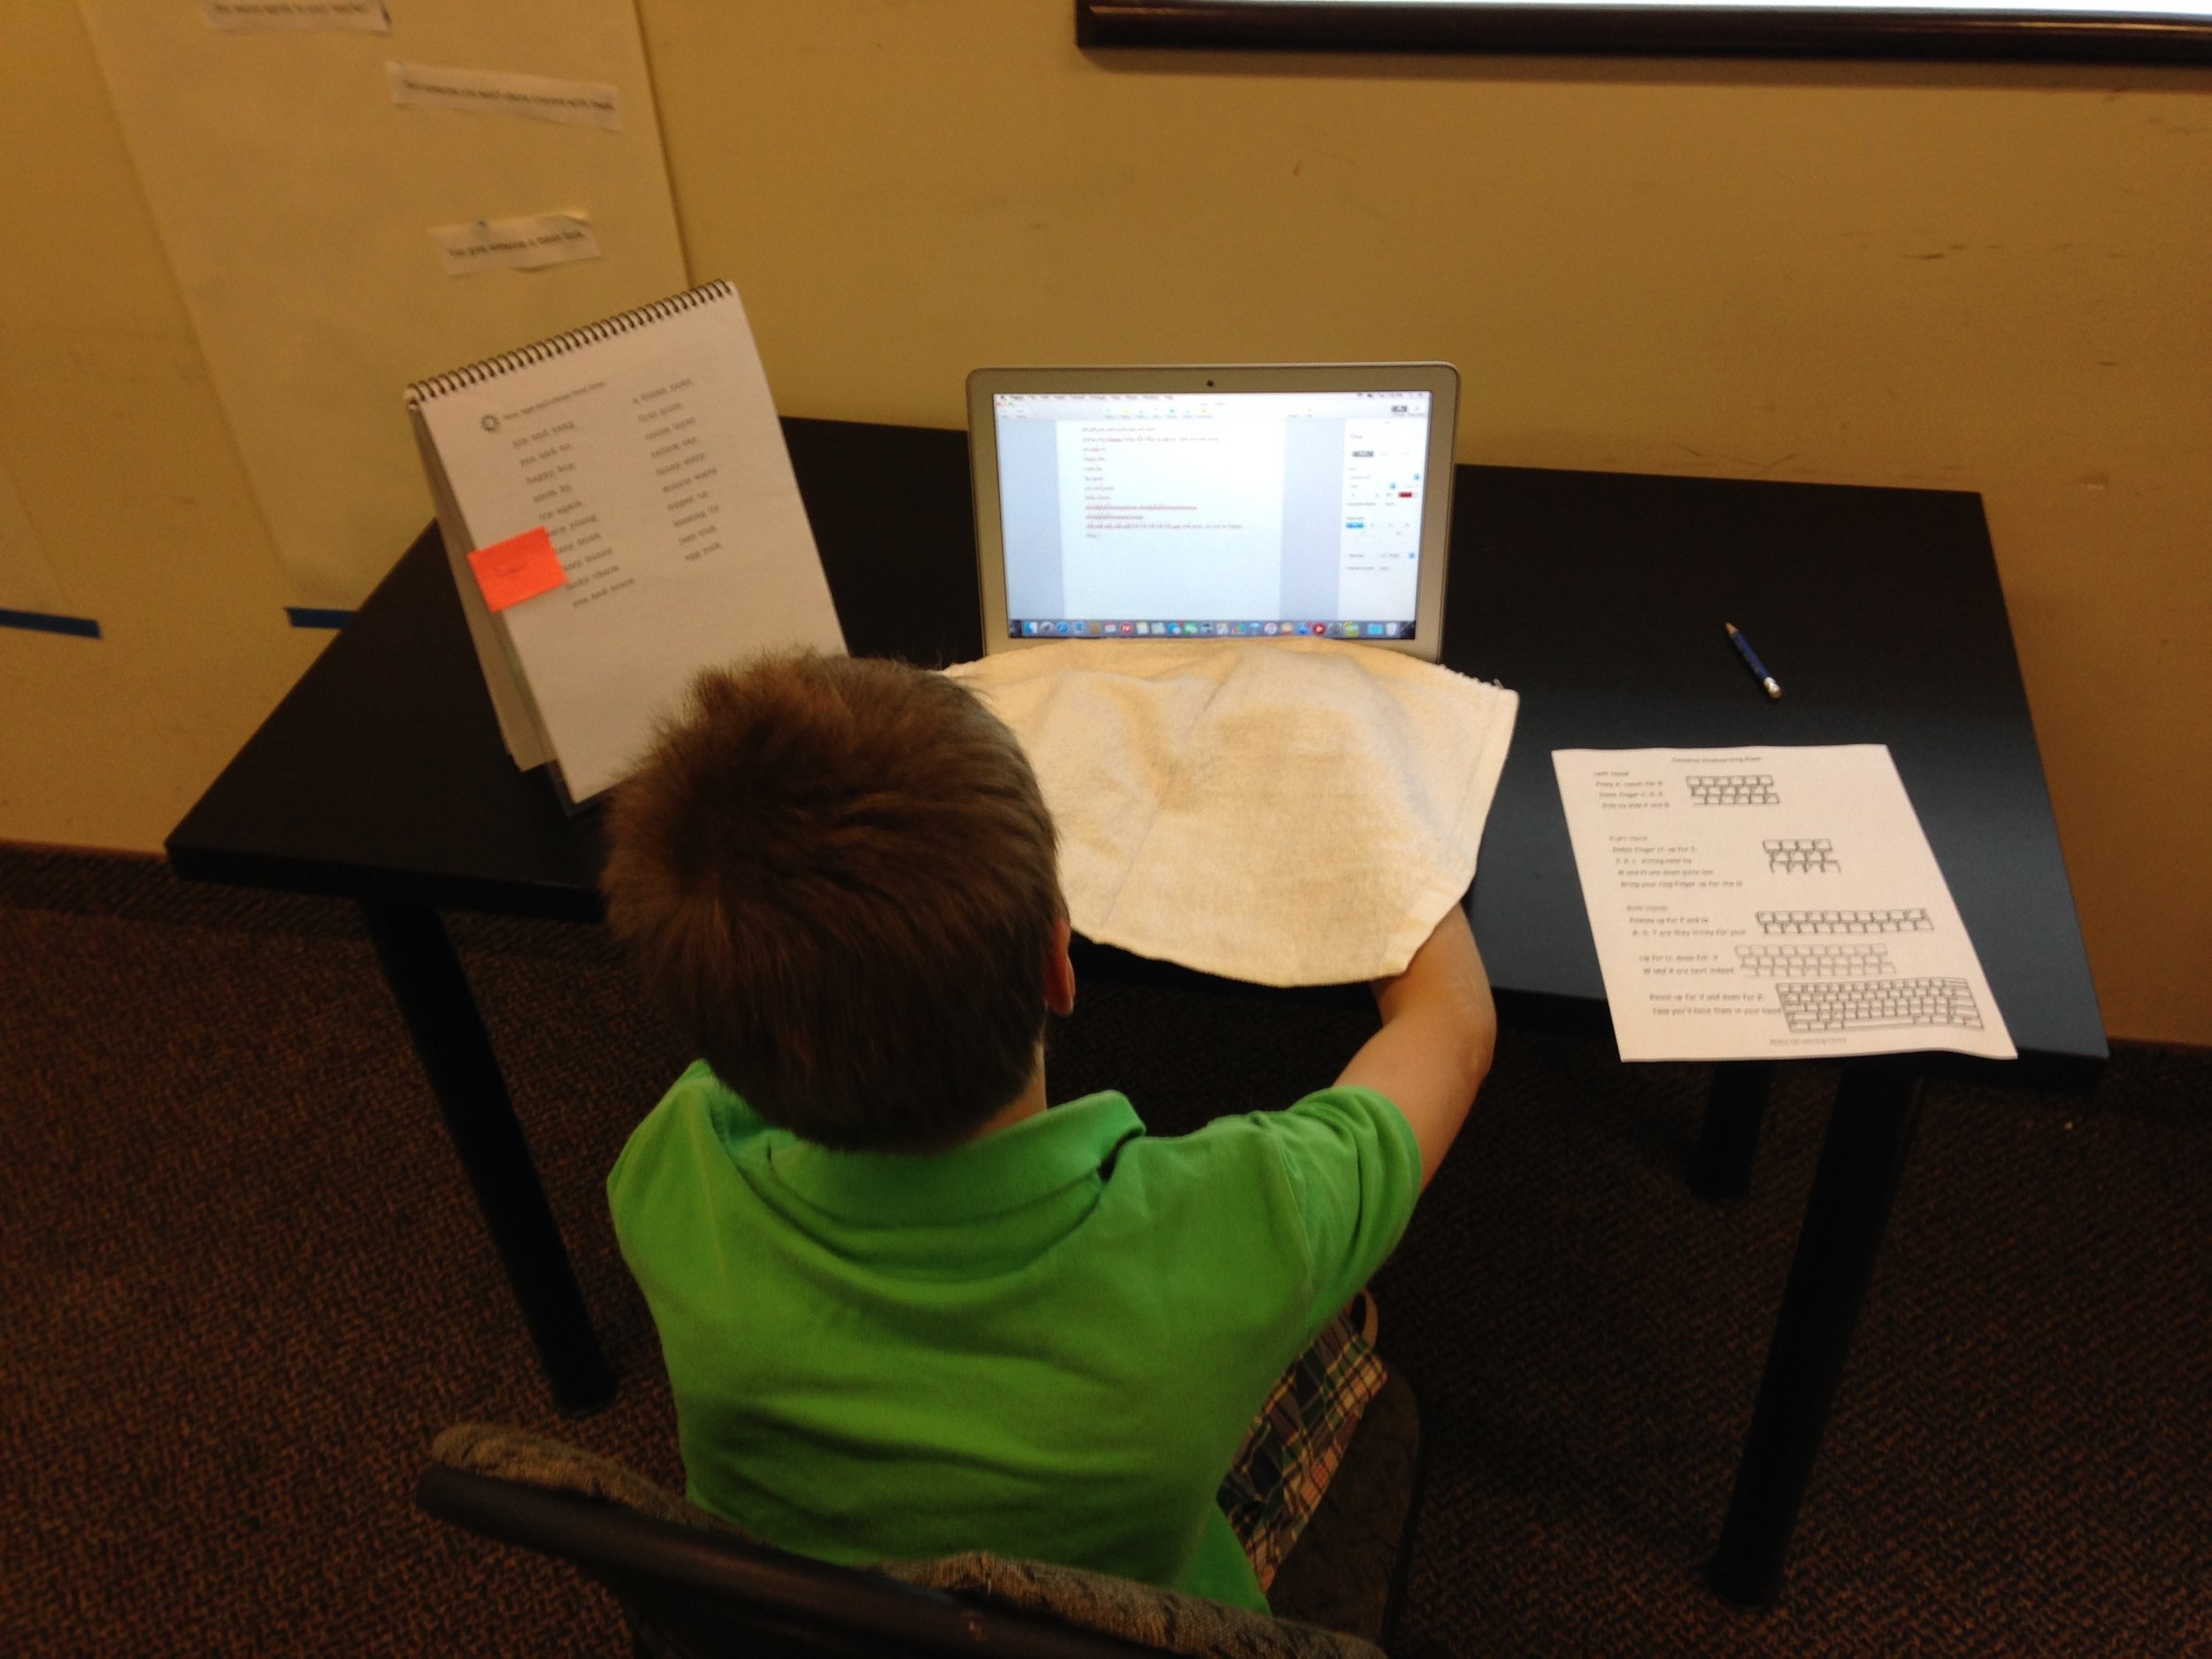 One of our keyboarding students learning how to type with their hands covered.